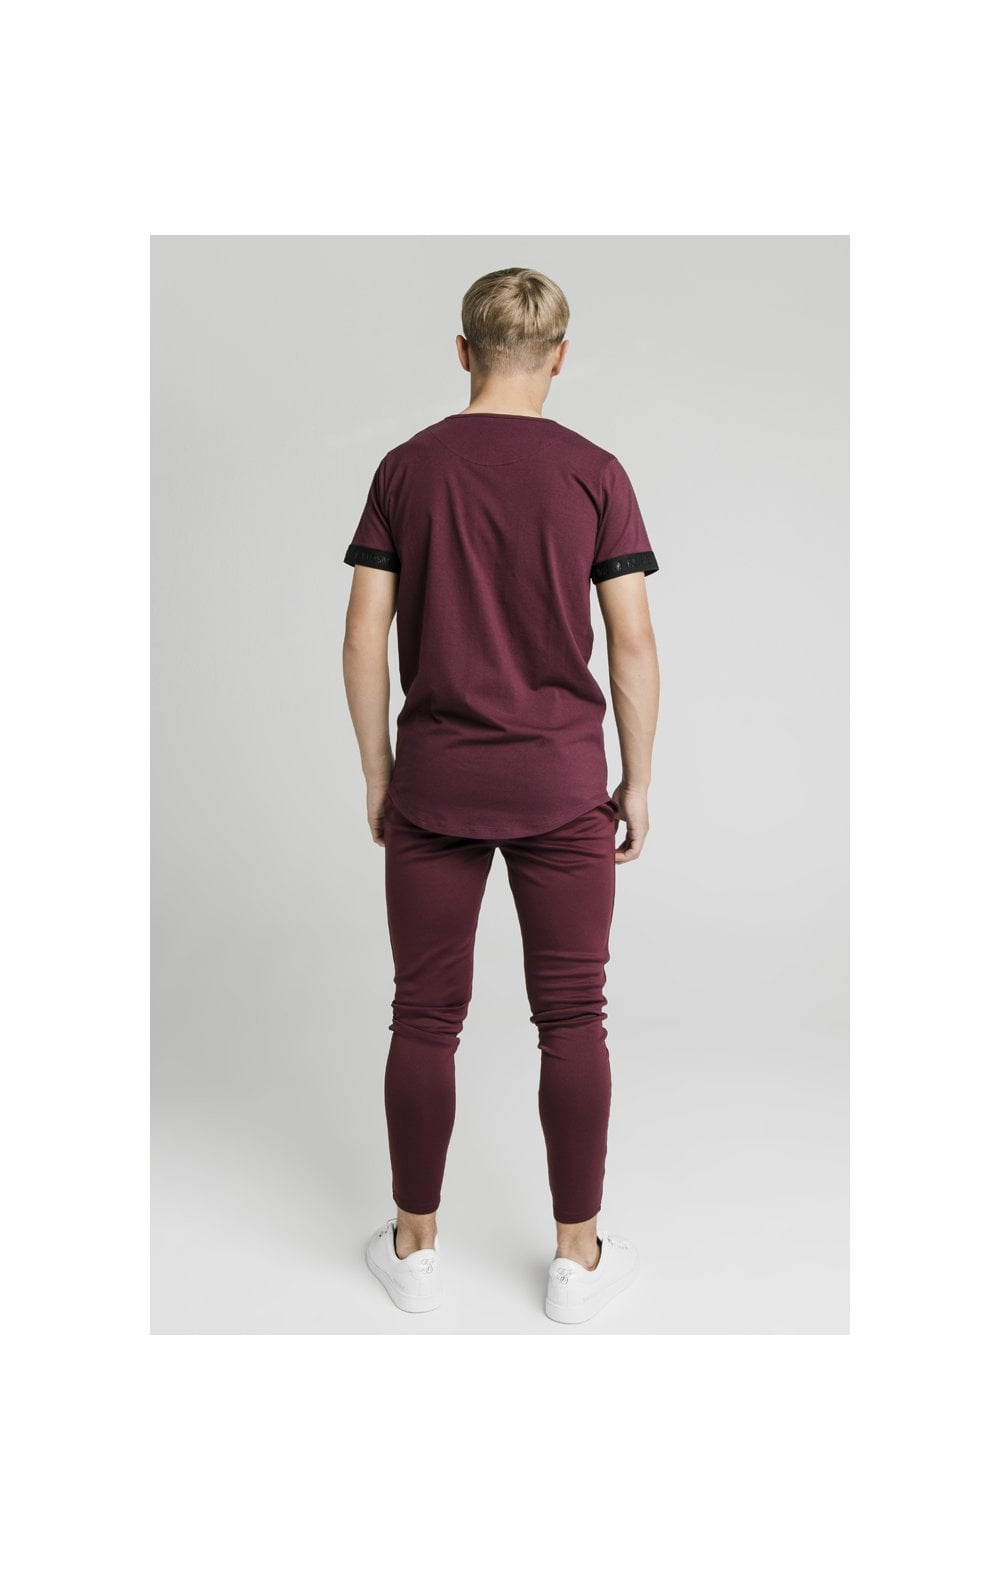 Illusive London Agility Track Pants - Burgundy (7)